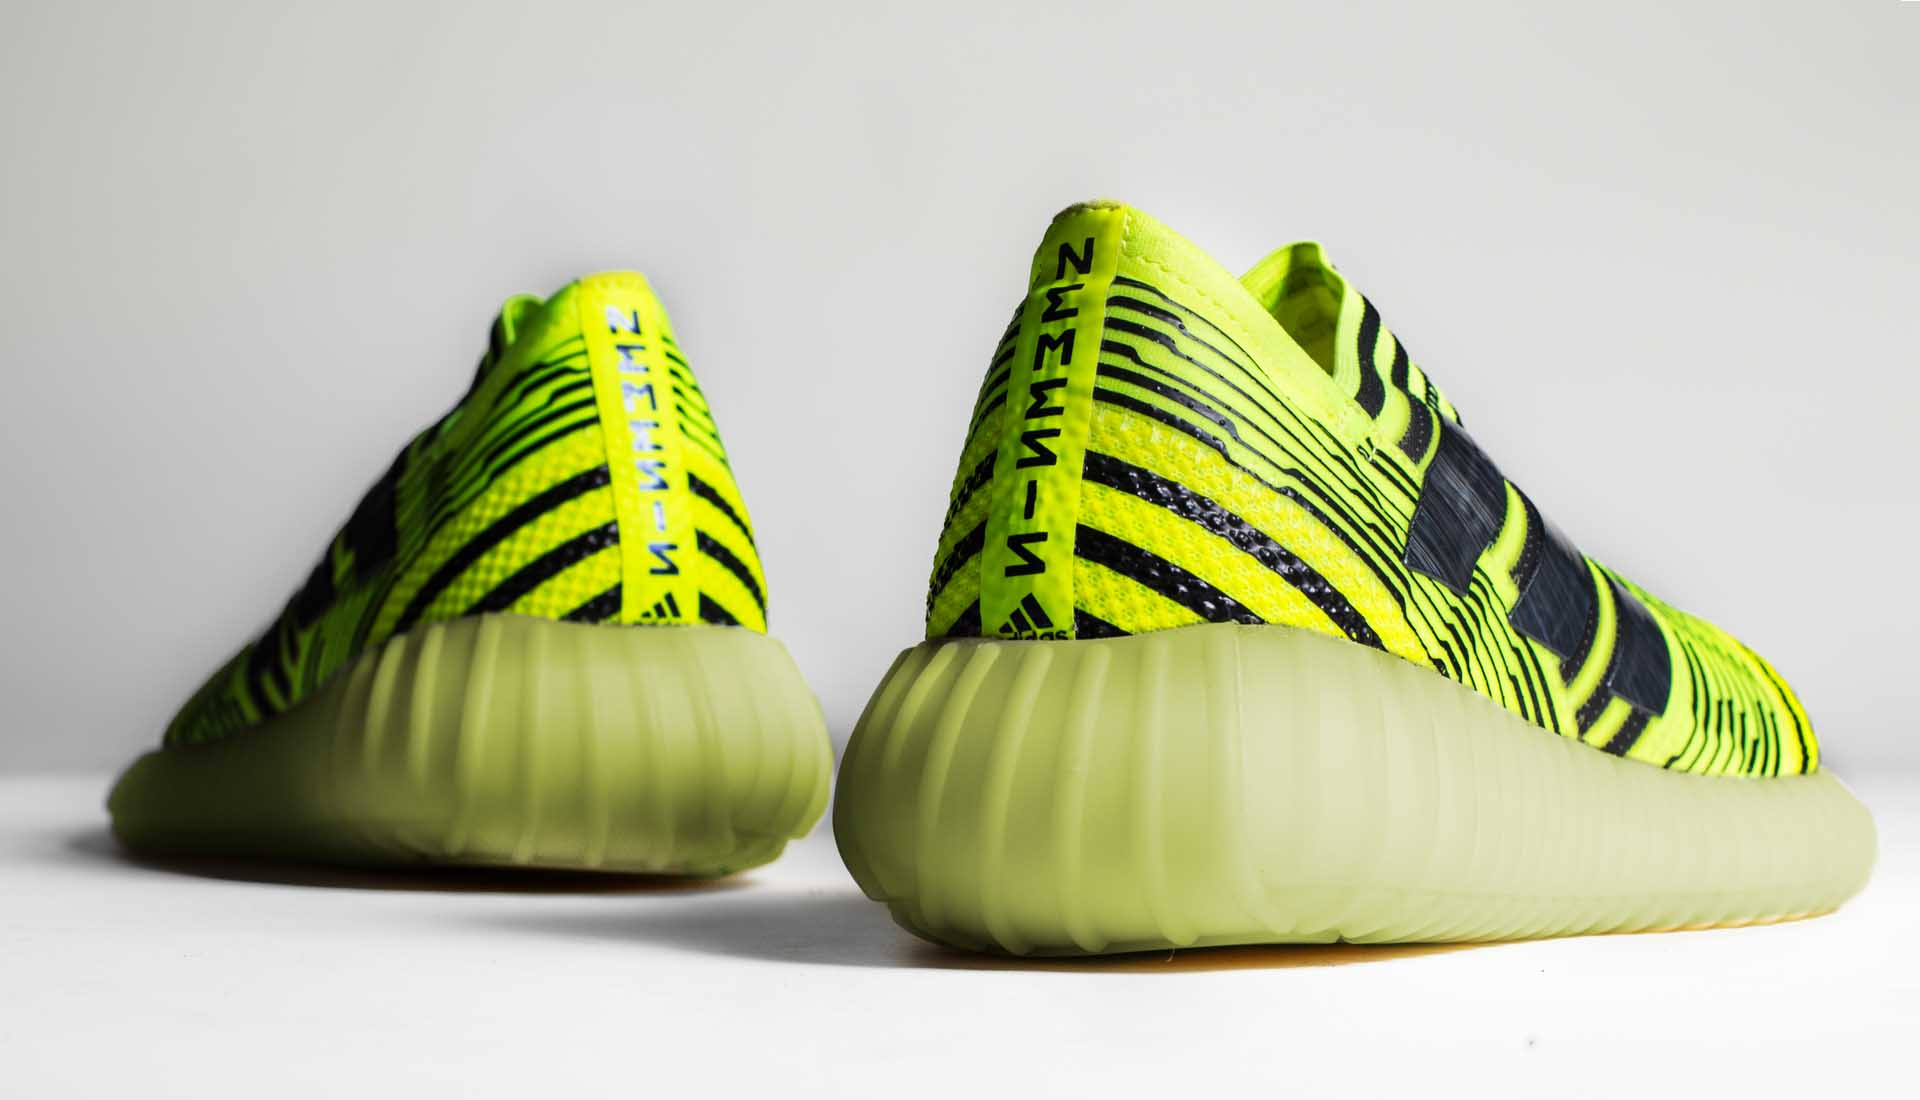 4eaa3a7ee2a0 Nemeziz x YEEZY Boost by the Shoe Surgeon - SoccerBible